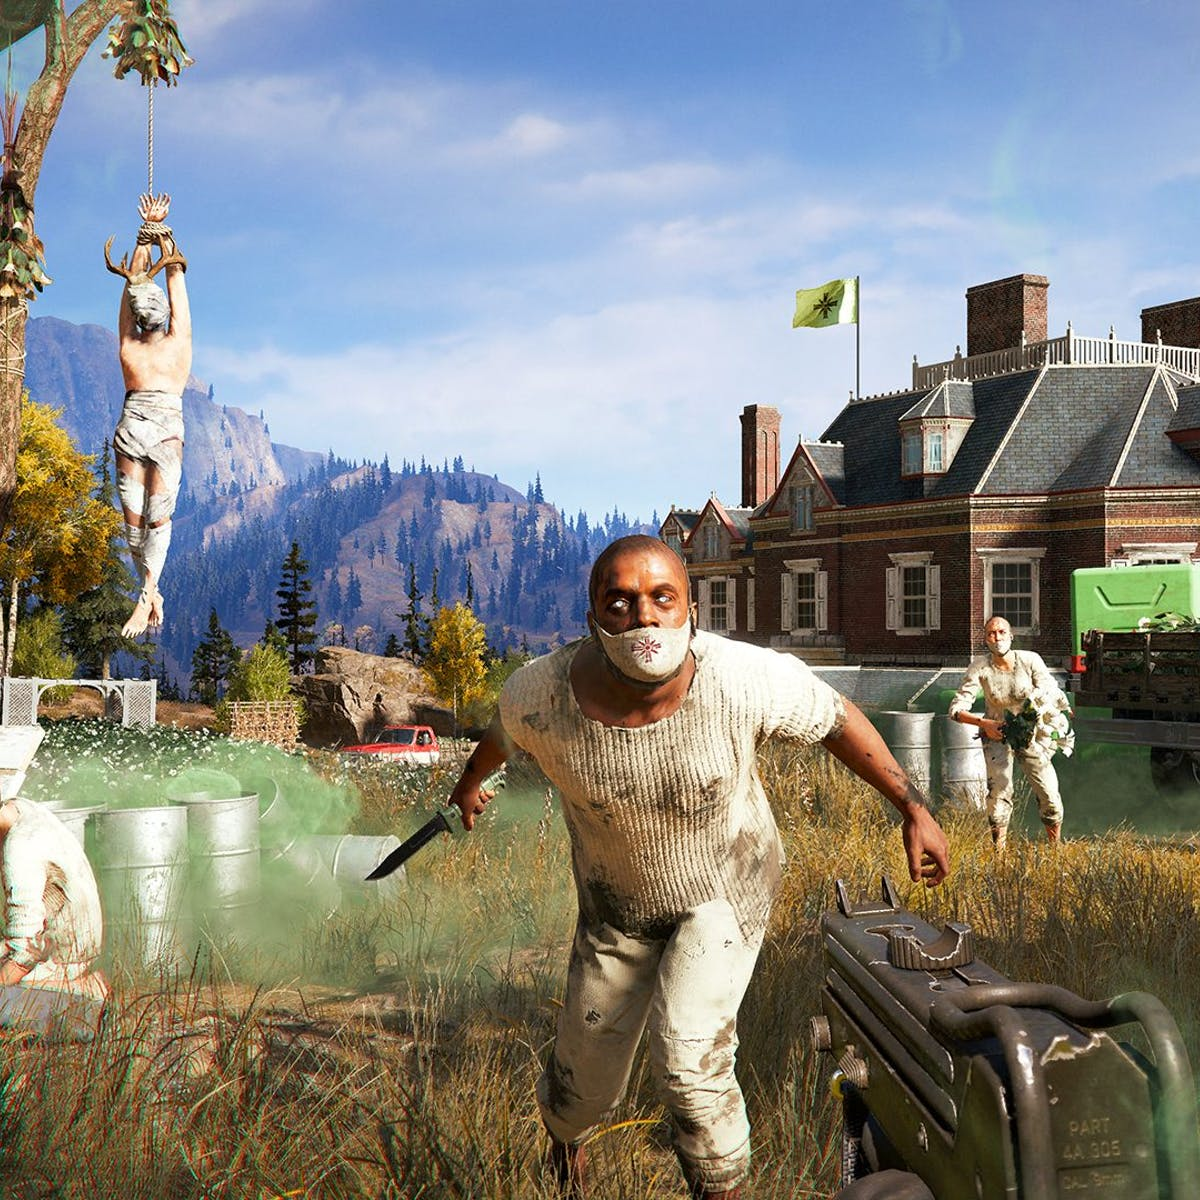 Far Cry 5 Cults Radicalism And Why This Video Game Speaks To